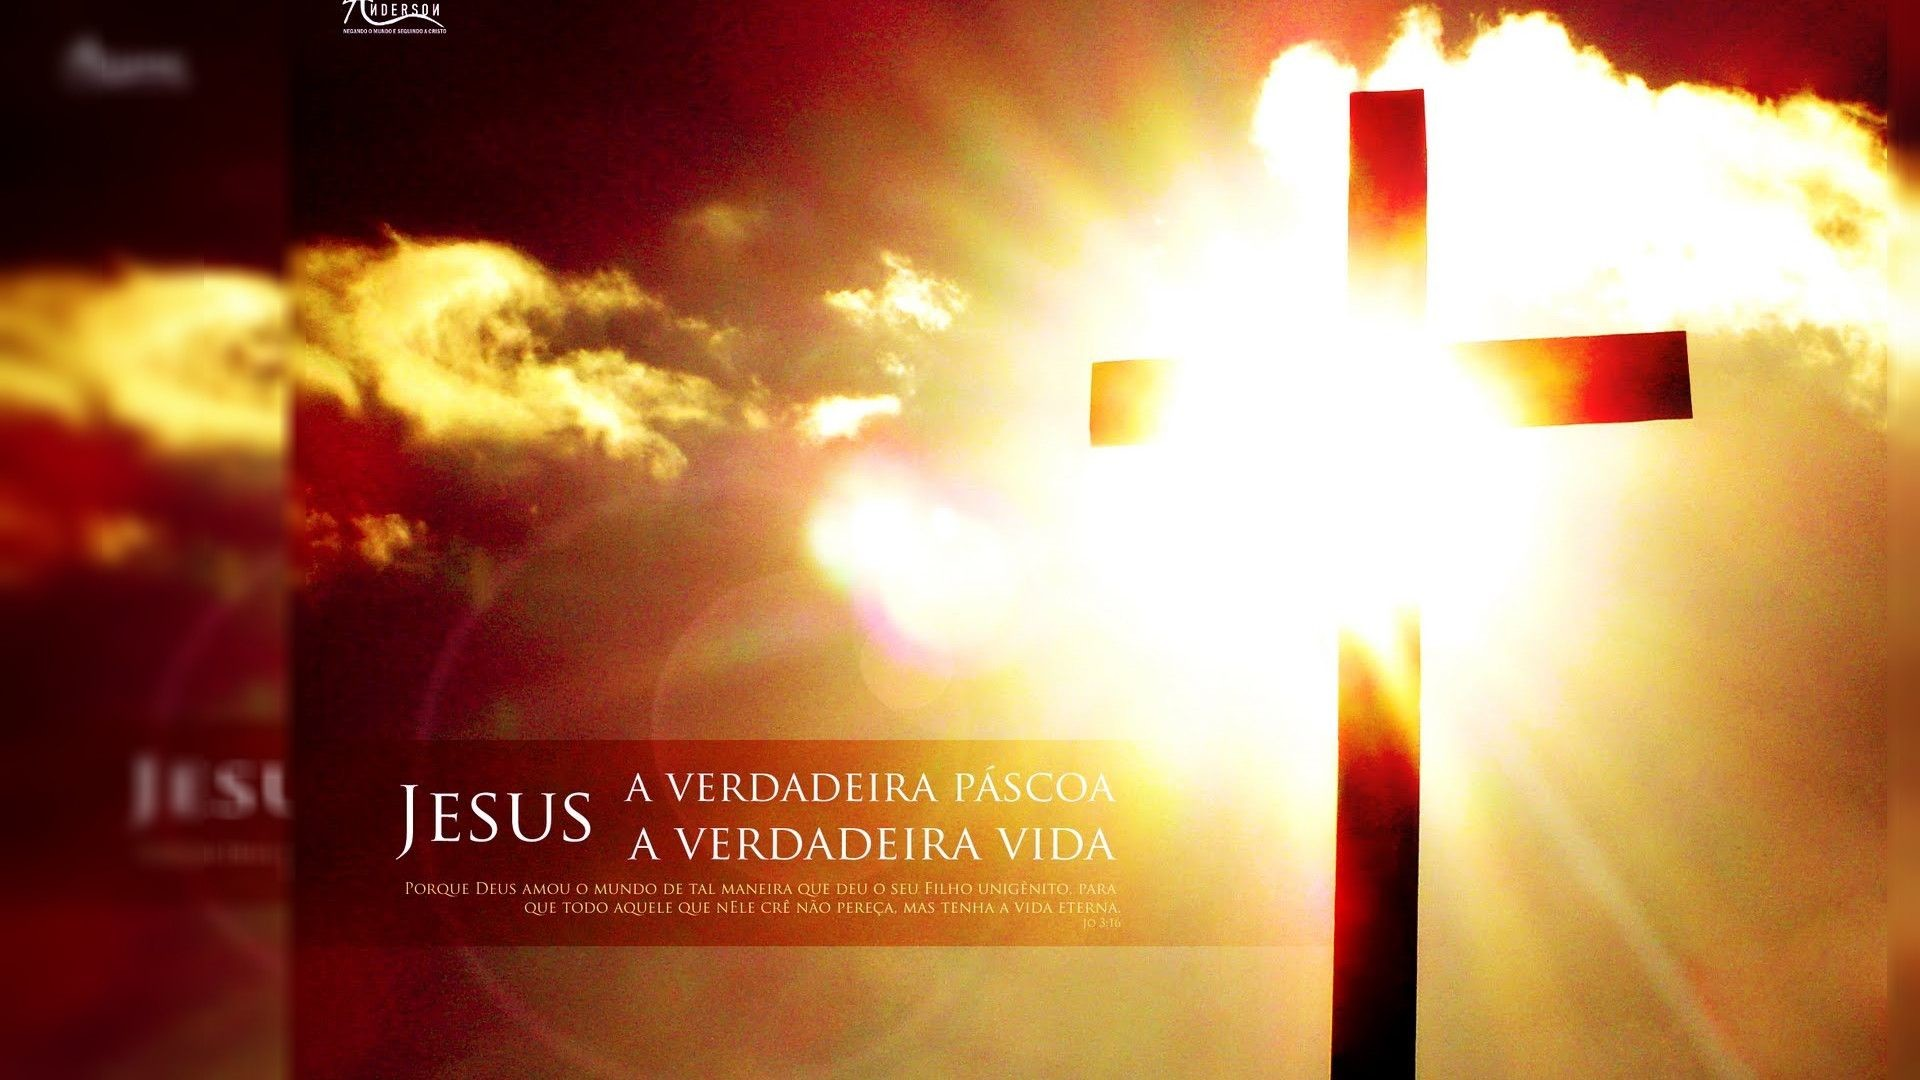 Imagenes Hd 1080p: Christian HD Wallpapers 1080p (71+ Images